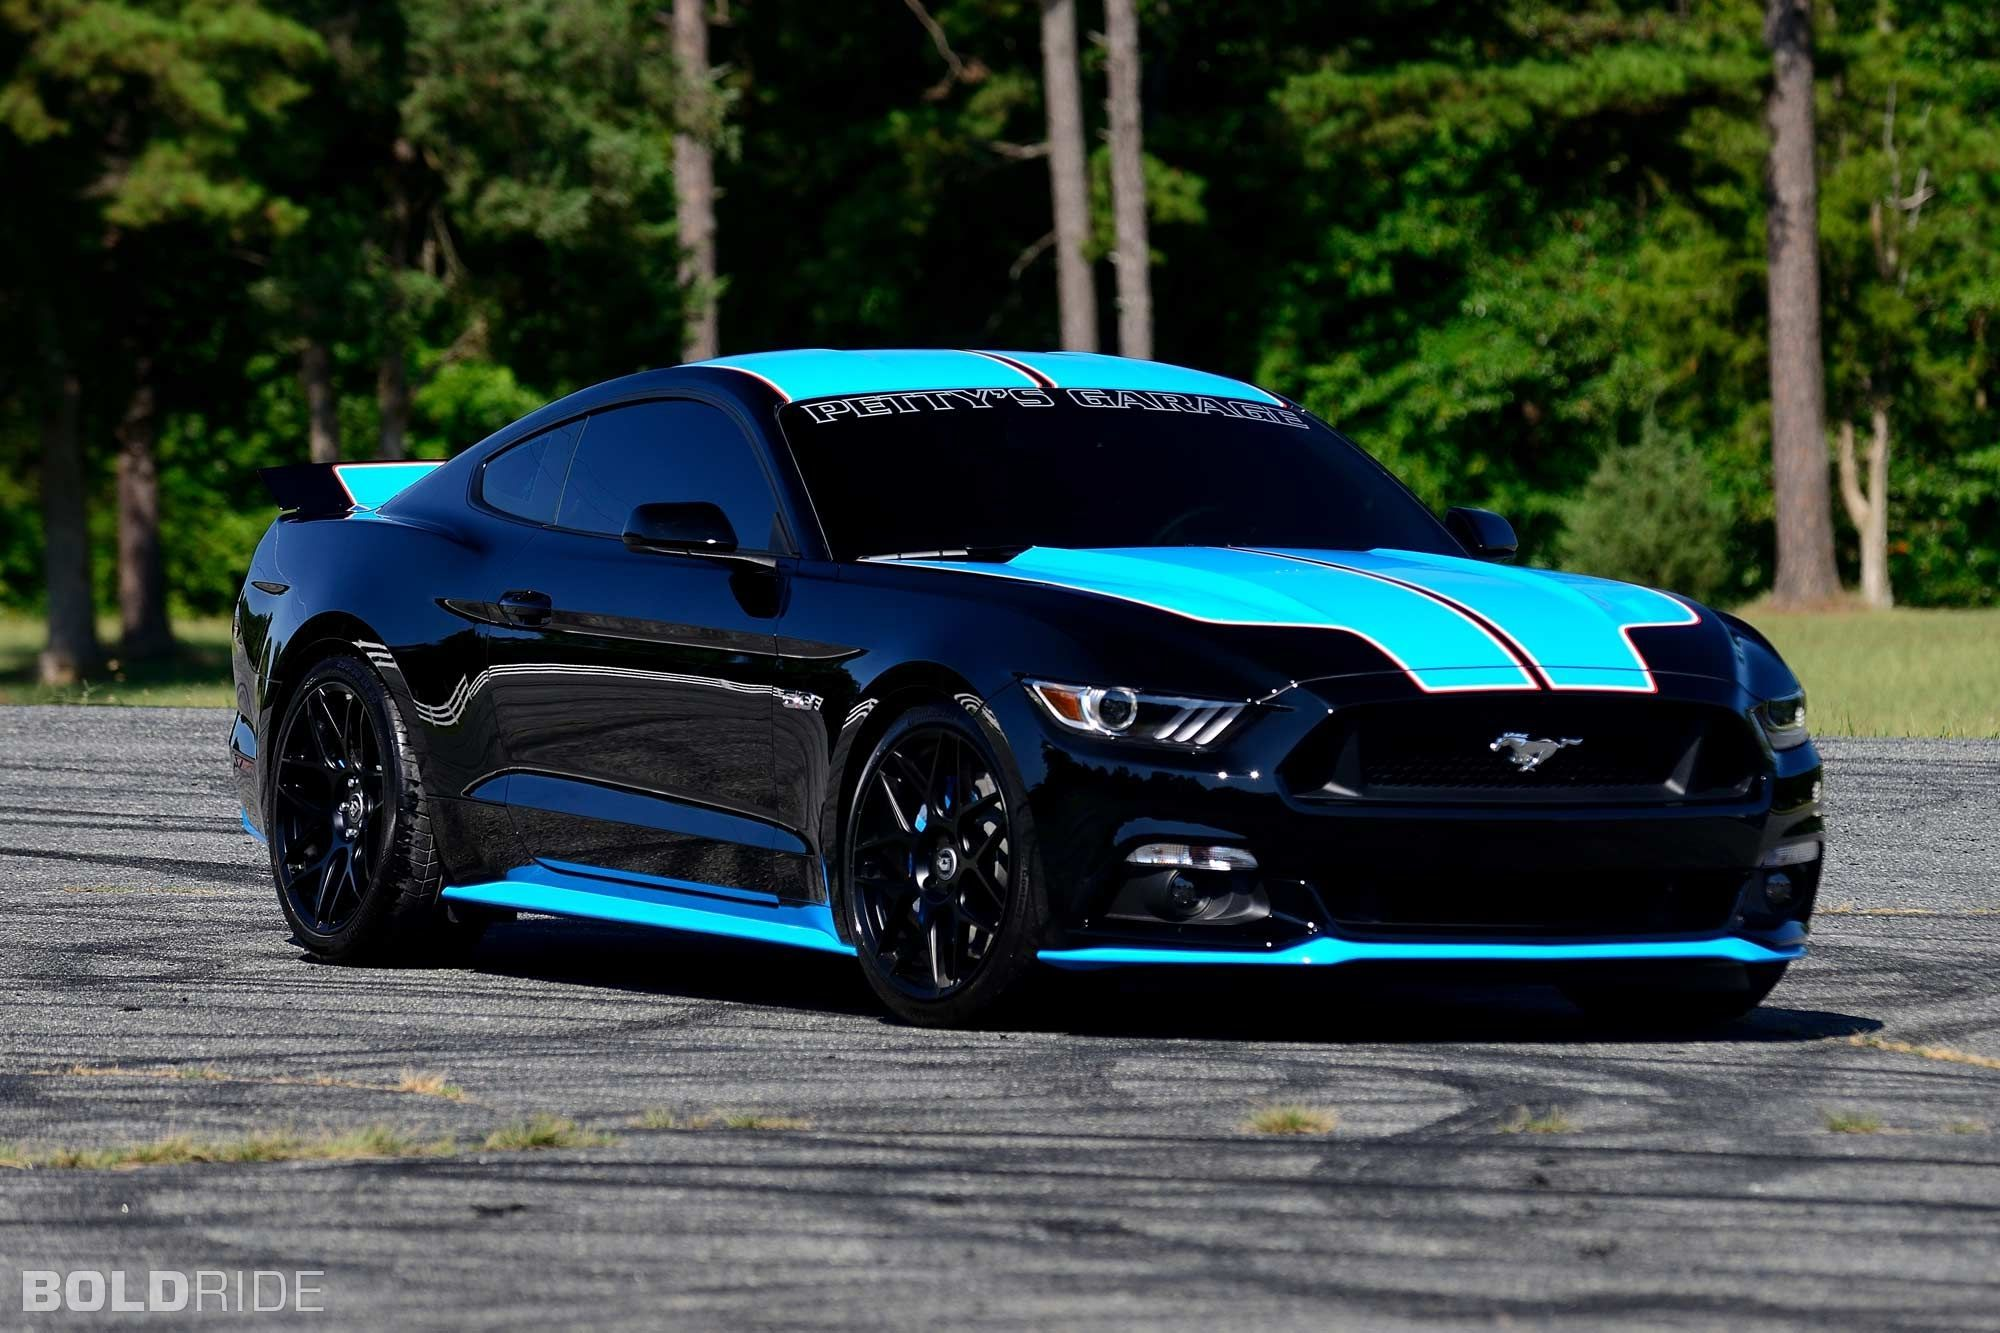 Richard Petty Garage Ford Mustang Gt First Car Ford